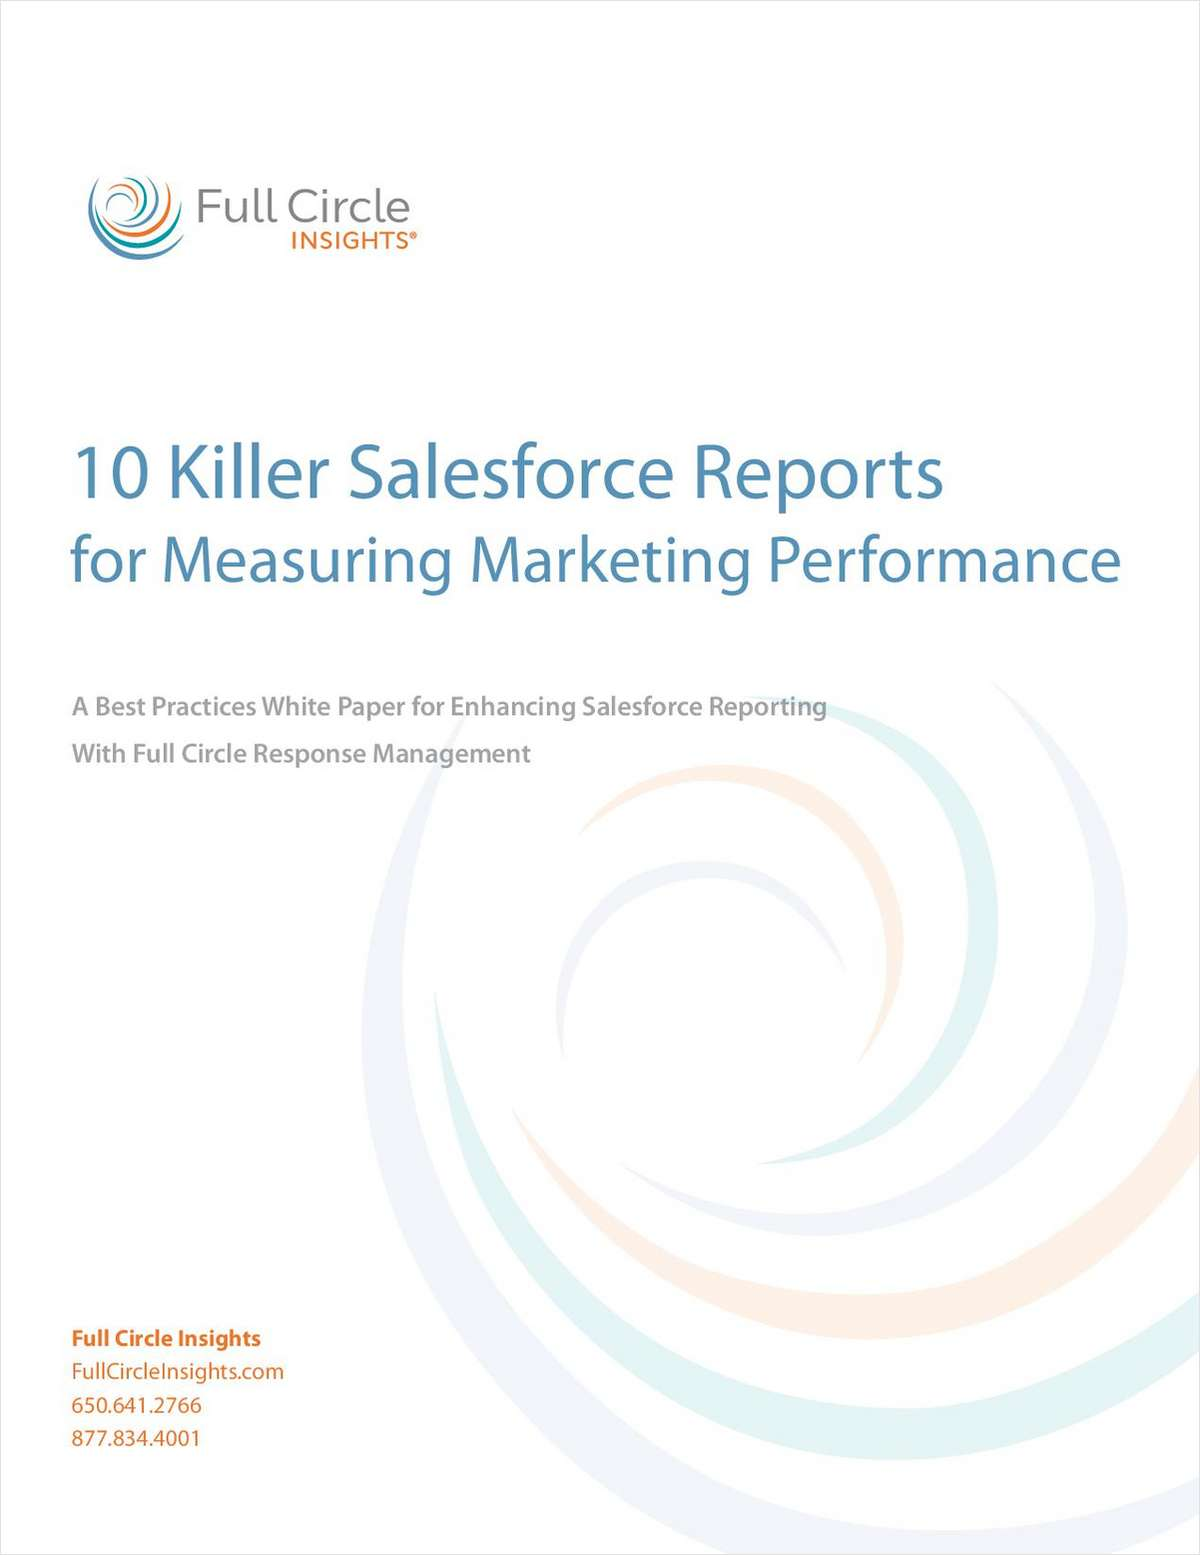 10 Killer Salesforce Reports for Measuring Marketing Performance